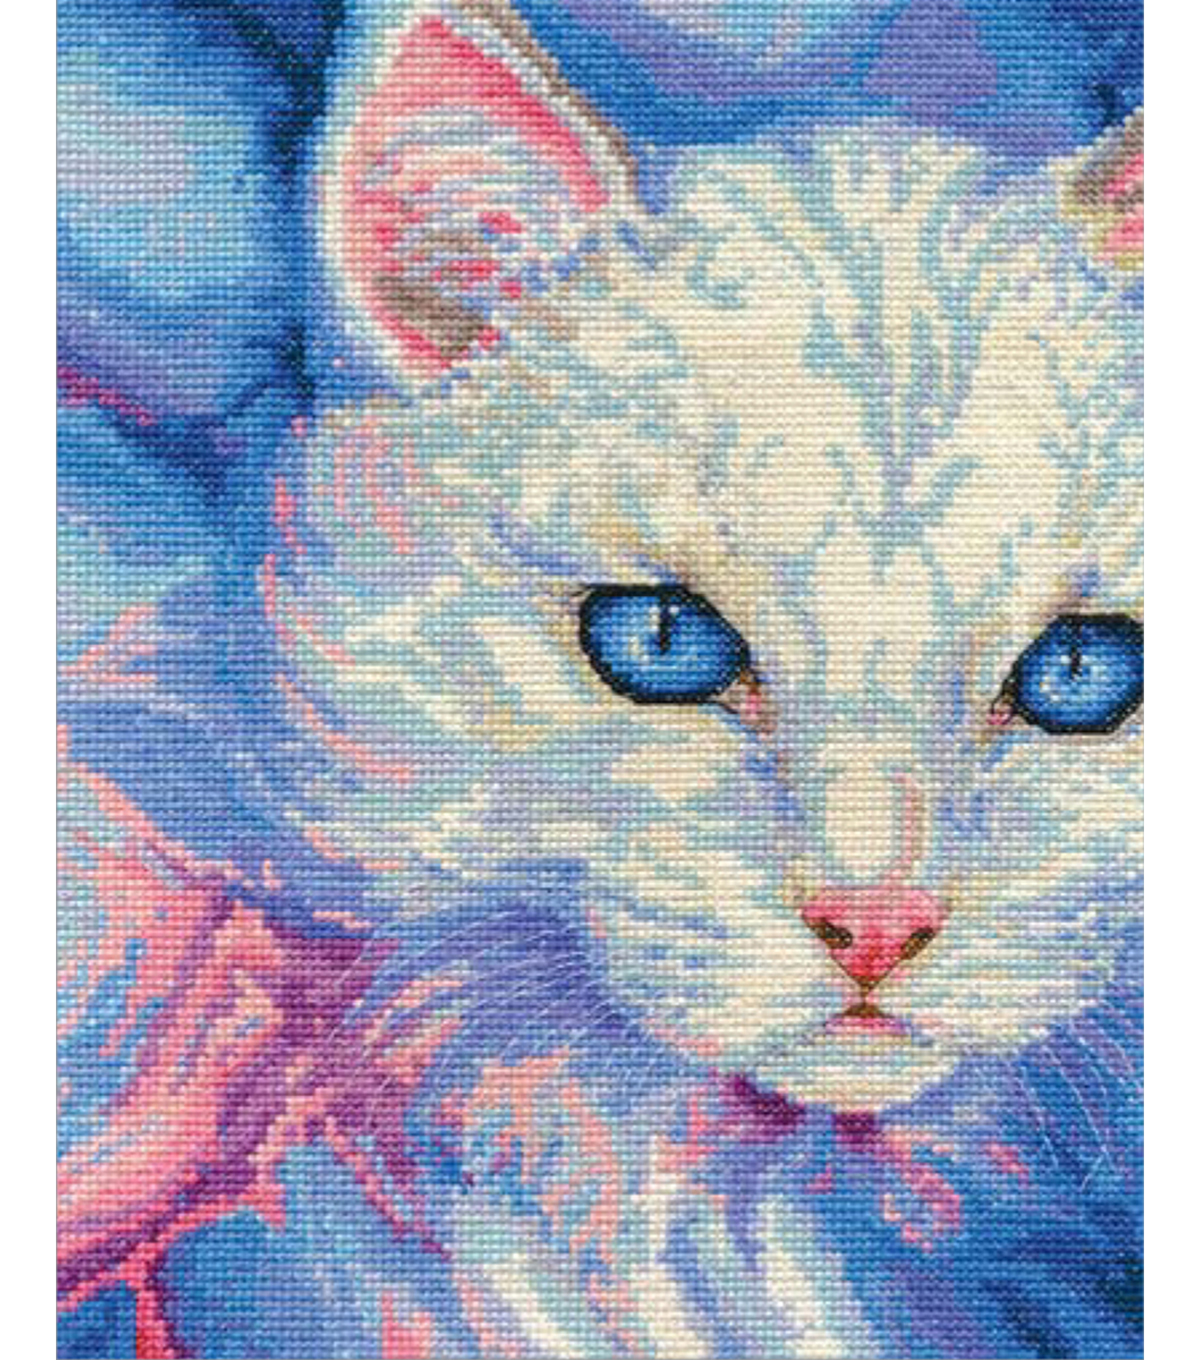 DMC Jayne Netley Mayhew 8\u0027\u0027x10\u0027\u0027 Counted Cross Stitch Kit-Turkish Angora